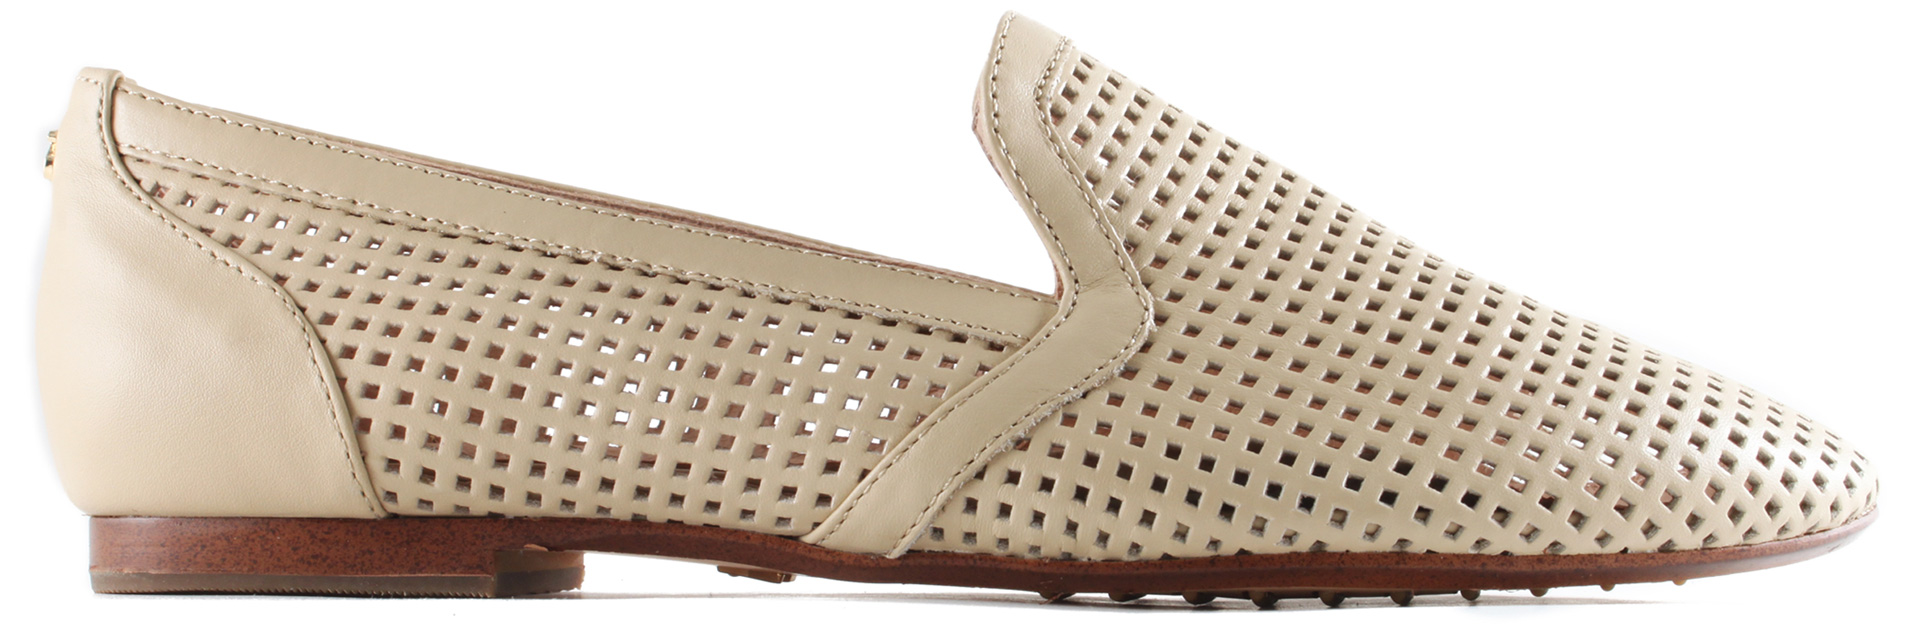 Shop the look: Yosi Samra Perforated Loafer in Biscotti (yosisamra.com, $150)